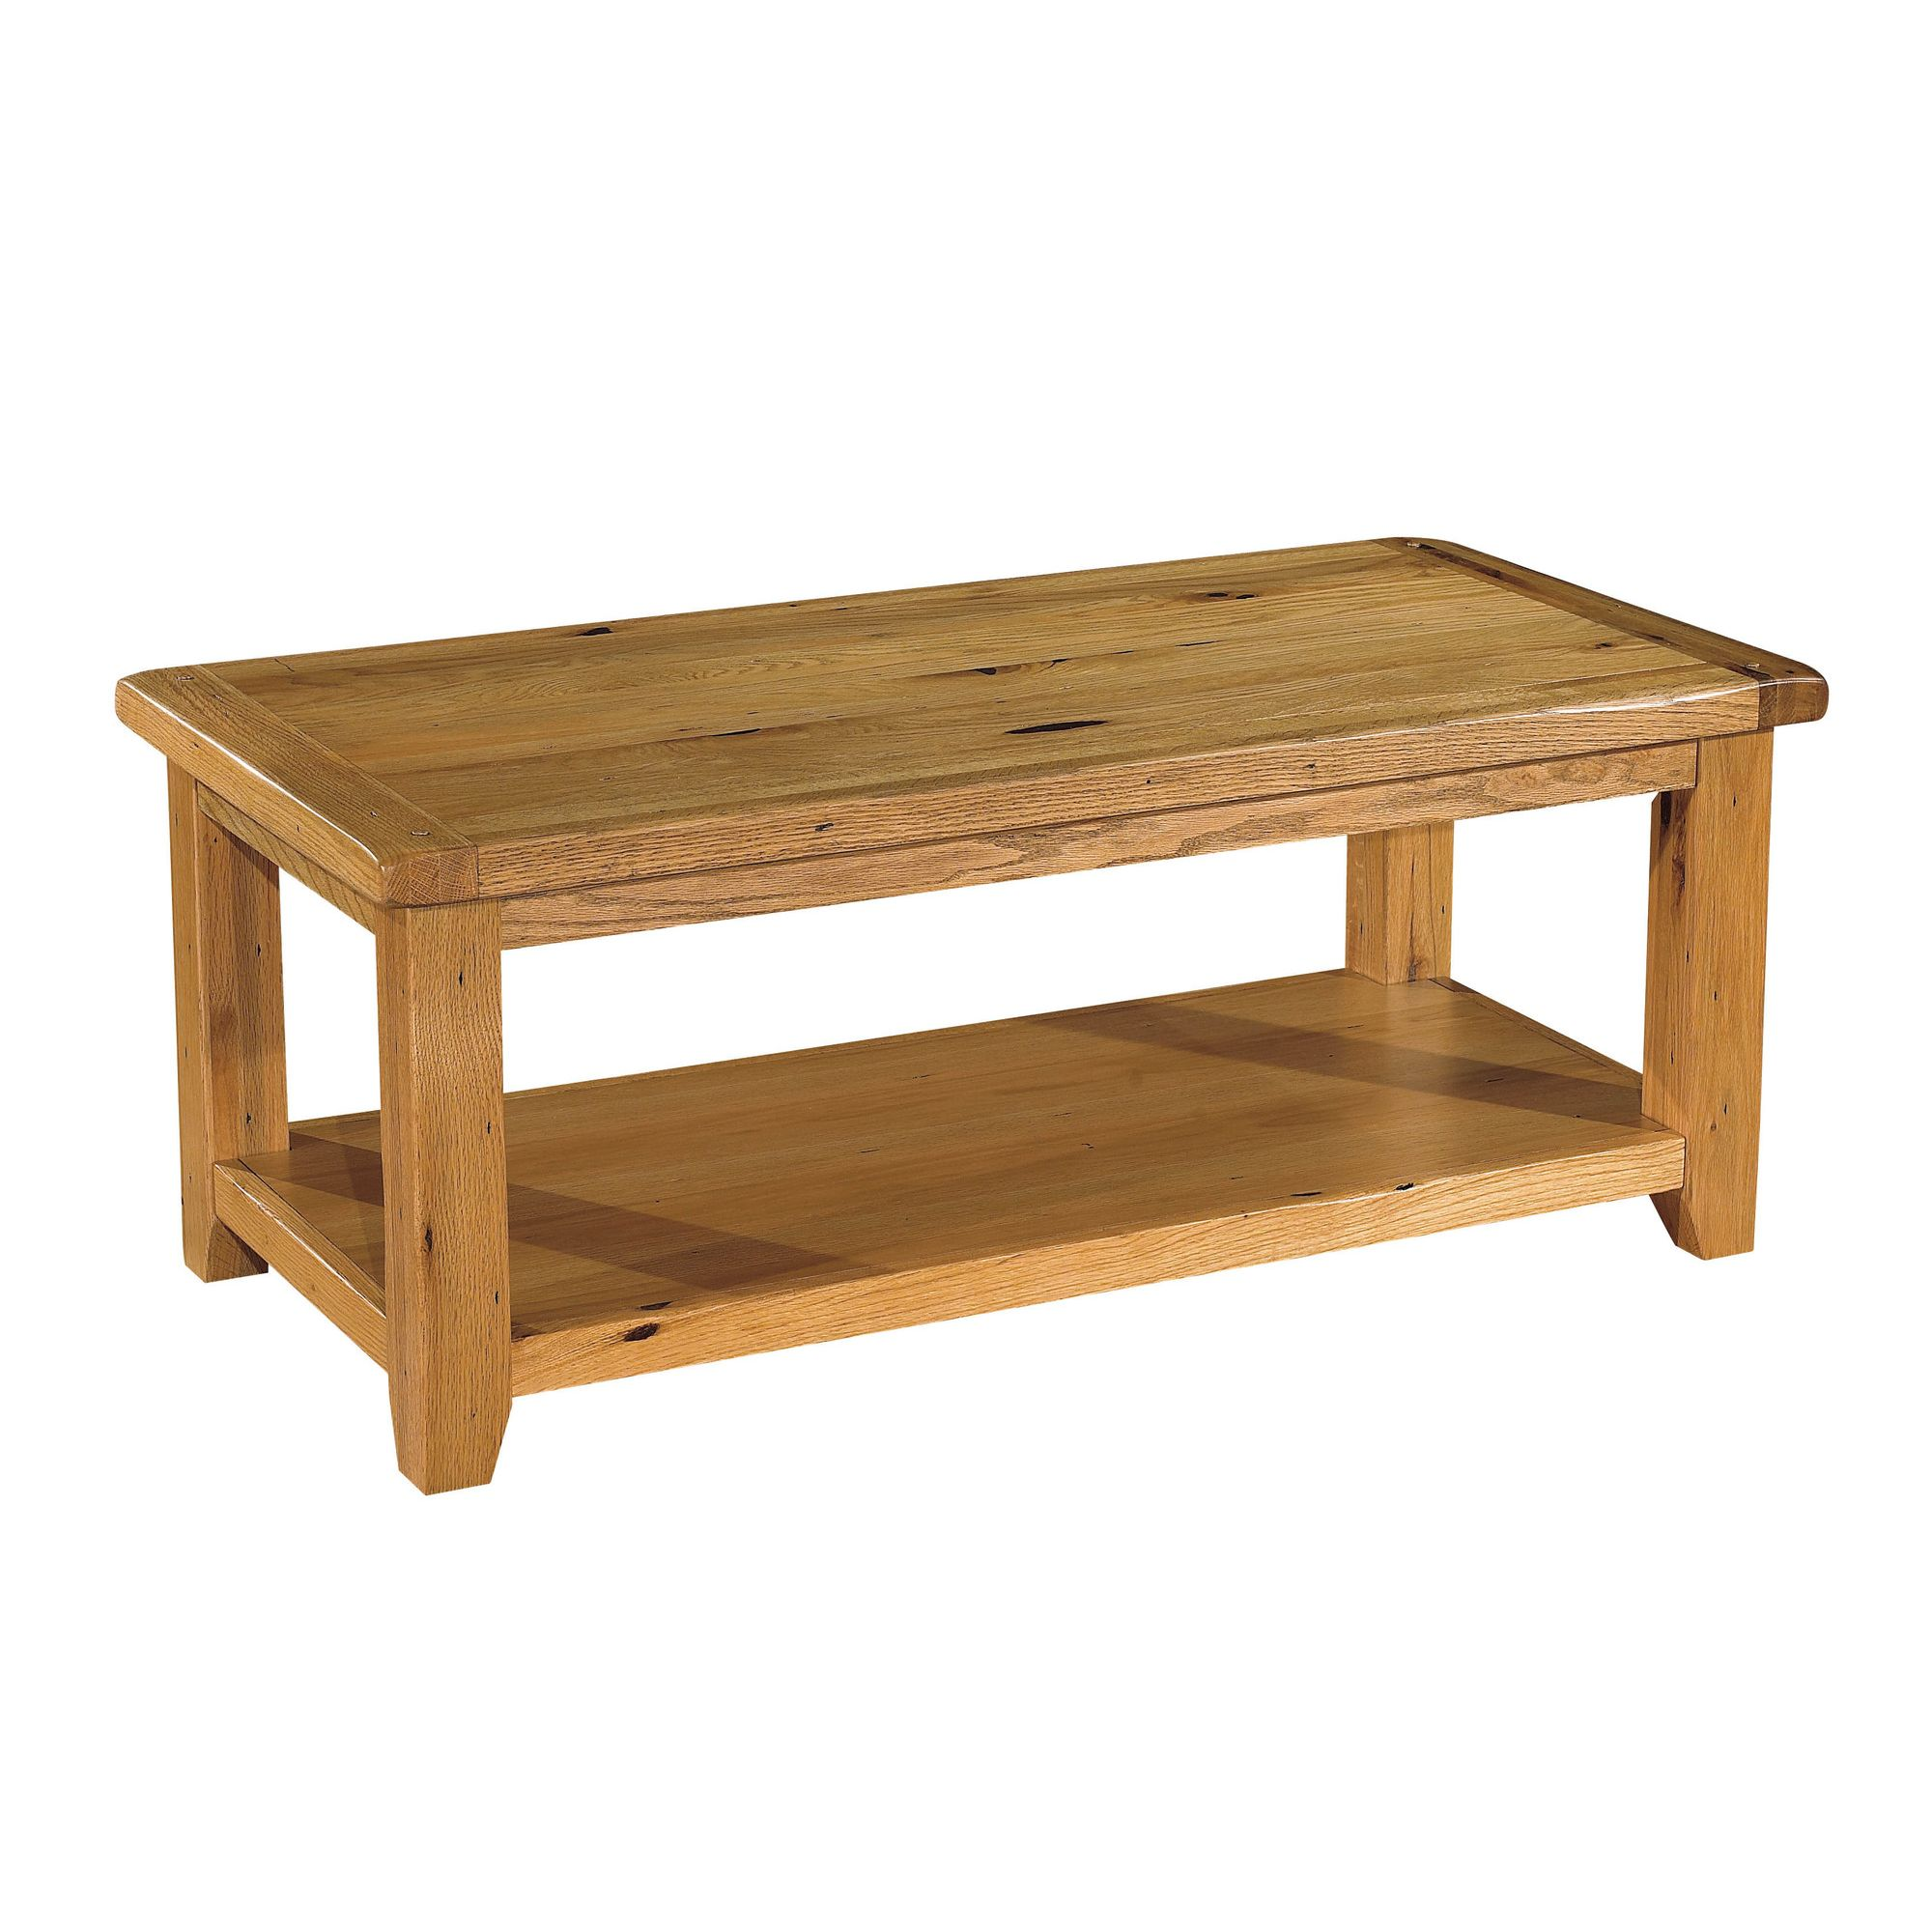 Kelburn Furniture Bordeaux Coffee Table in Medium Oak Stain and Satin Lacquer at Tesco Direct